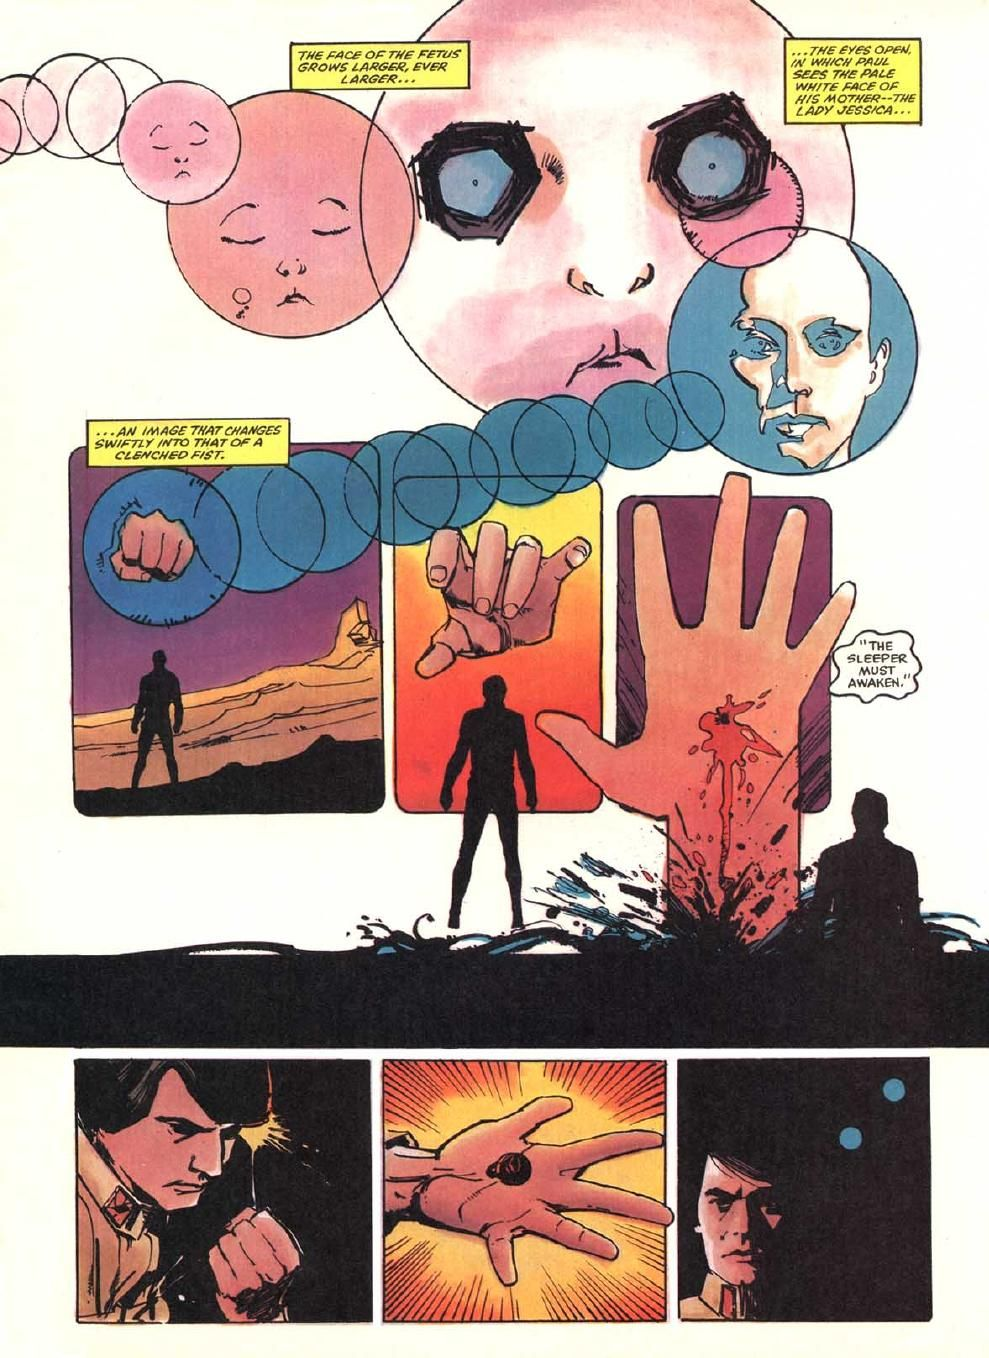 Ben Towle: Some Bill Sienkiewicz pages from the old Marvel... | Comic  layout, Comic books art, Comic illustration